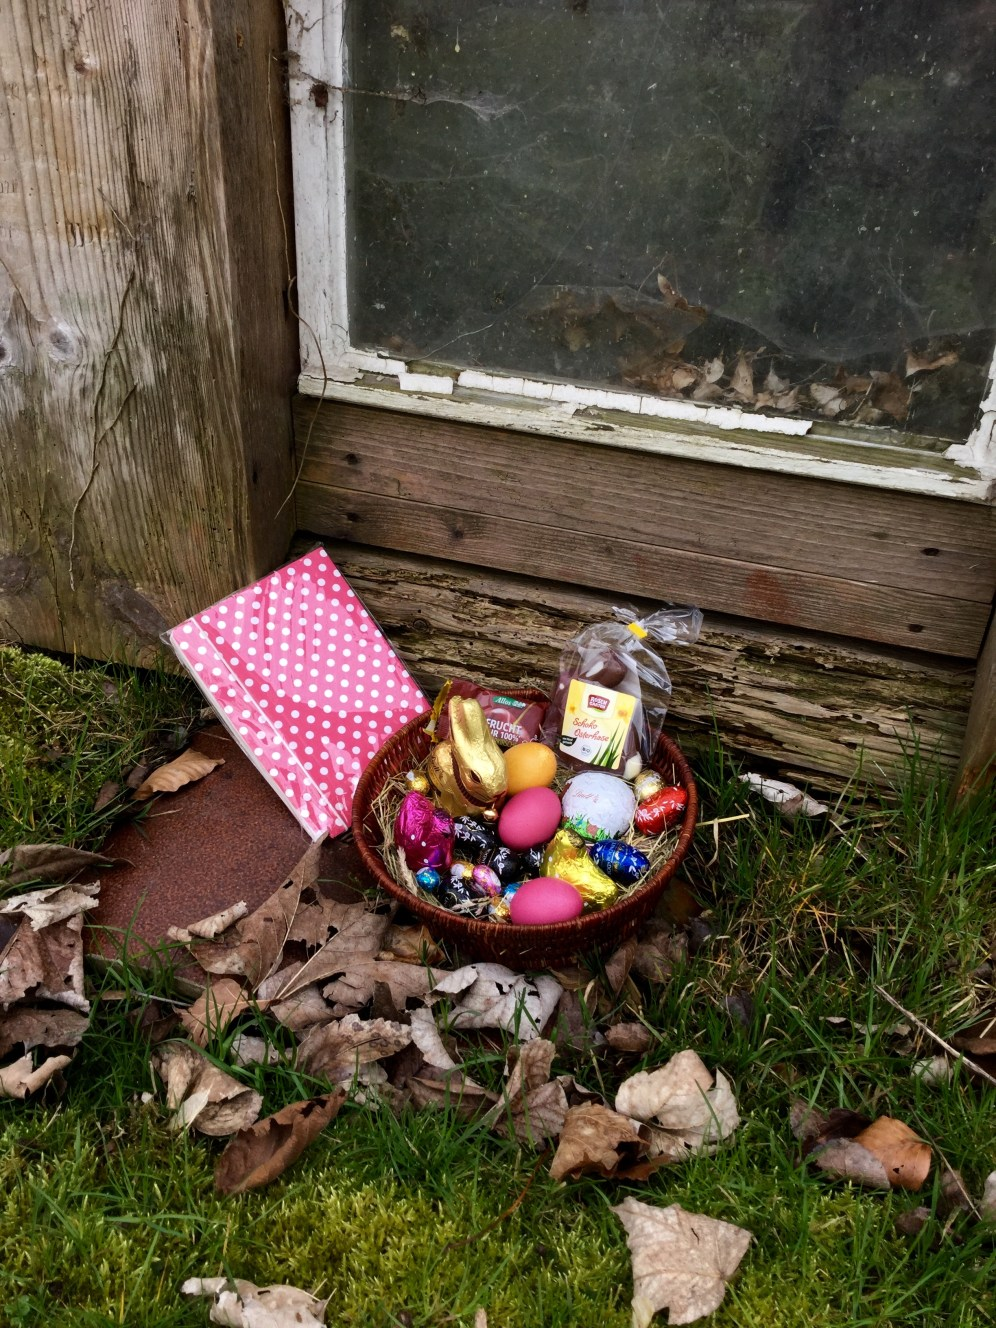 Easter nest with chocolate bunny and eggs